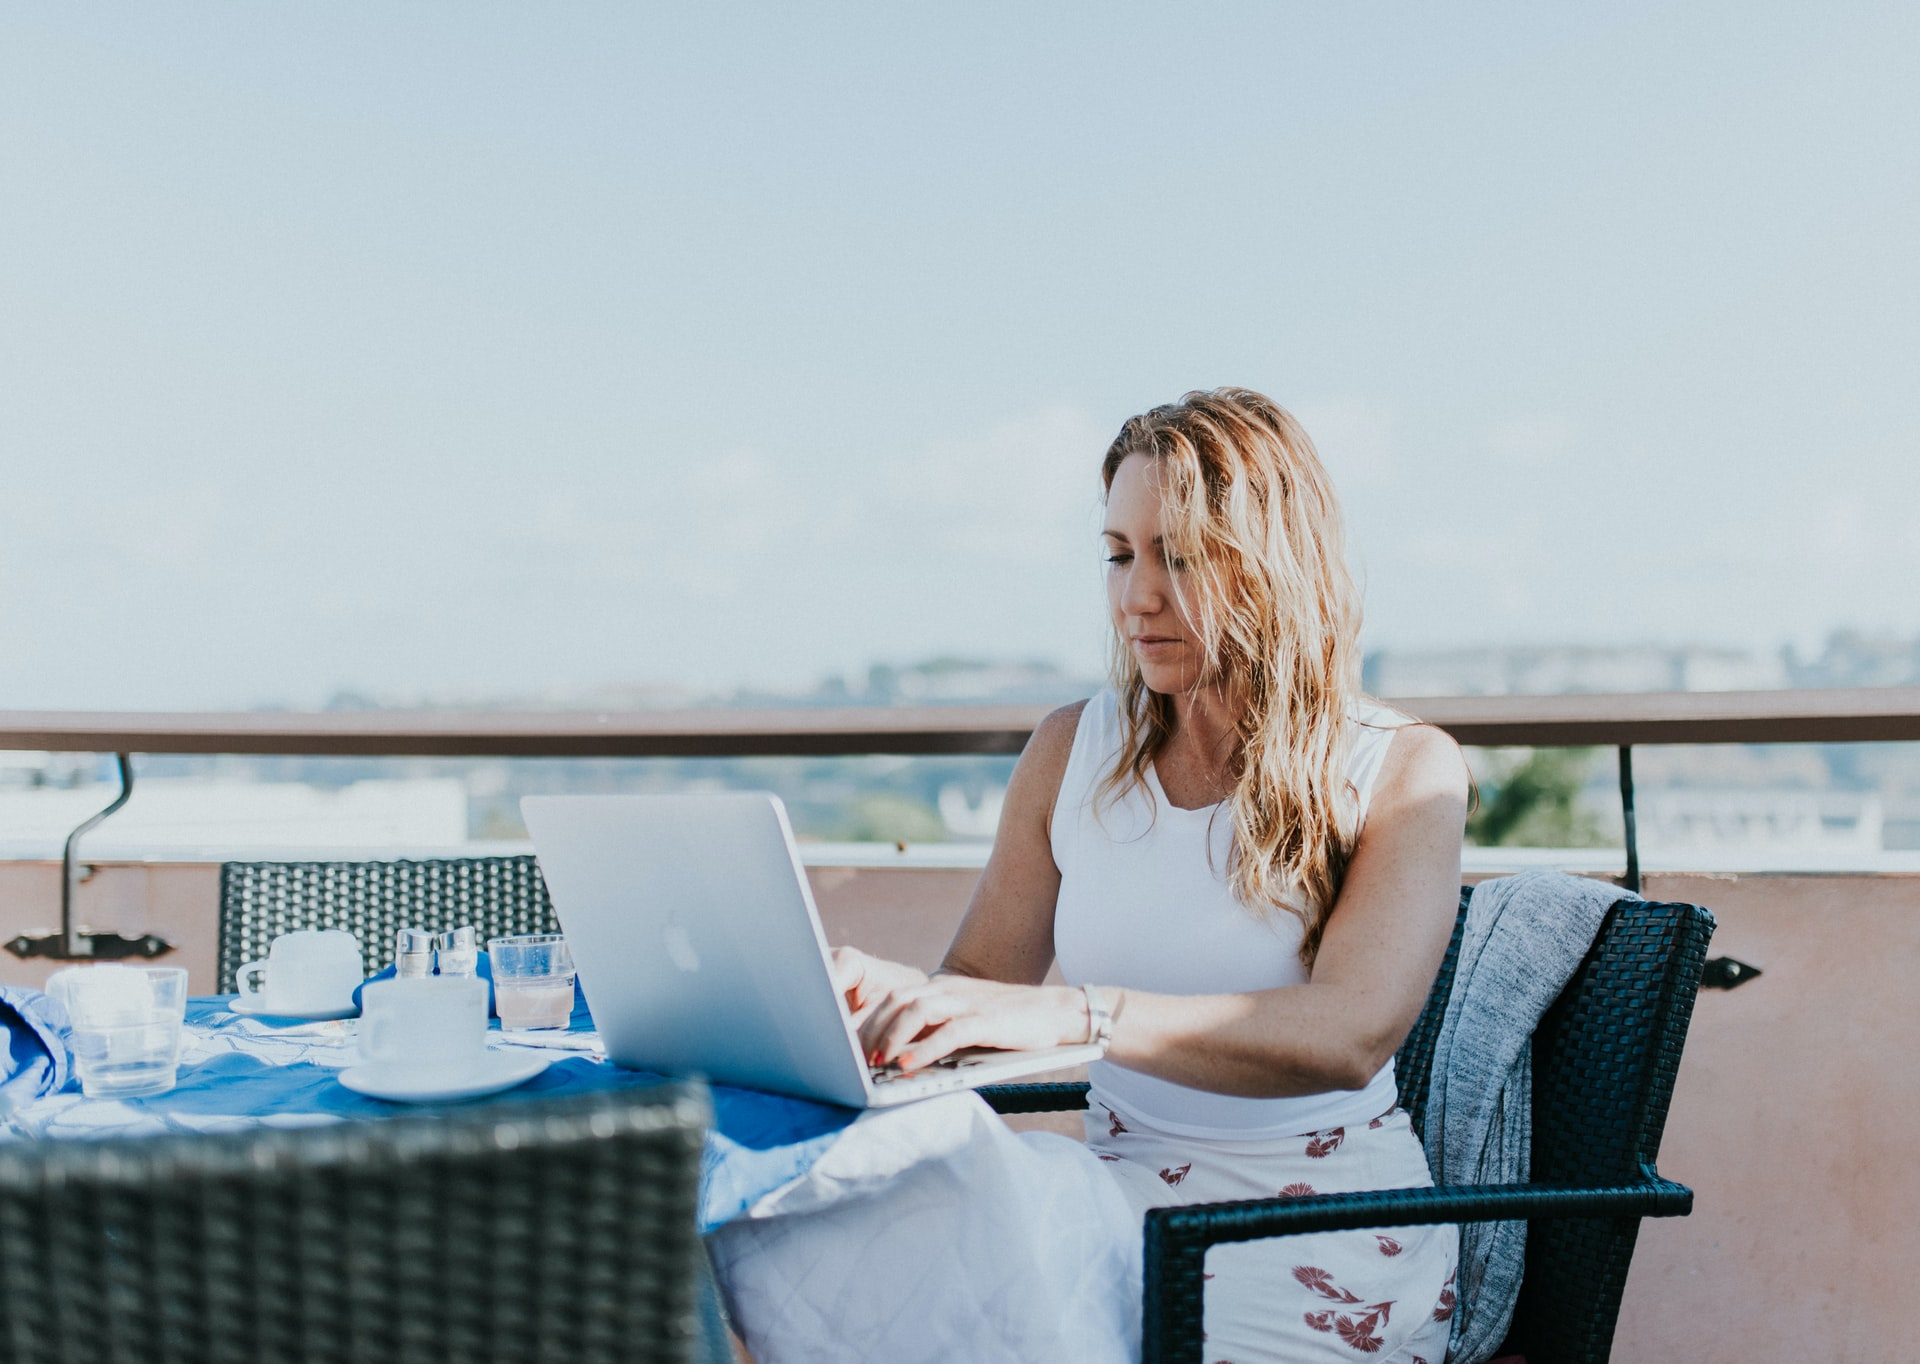 85% of Americans Would Give Up Part of Salary for Permanent Remote Work